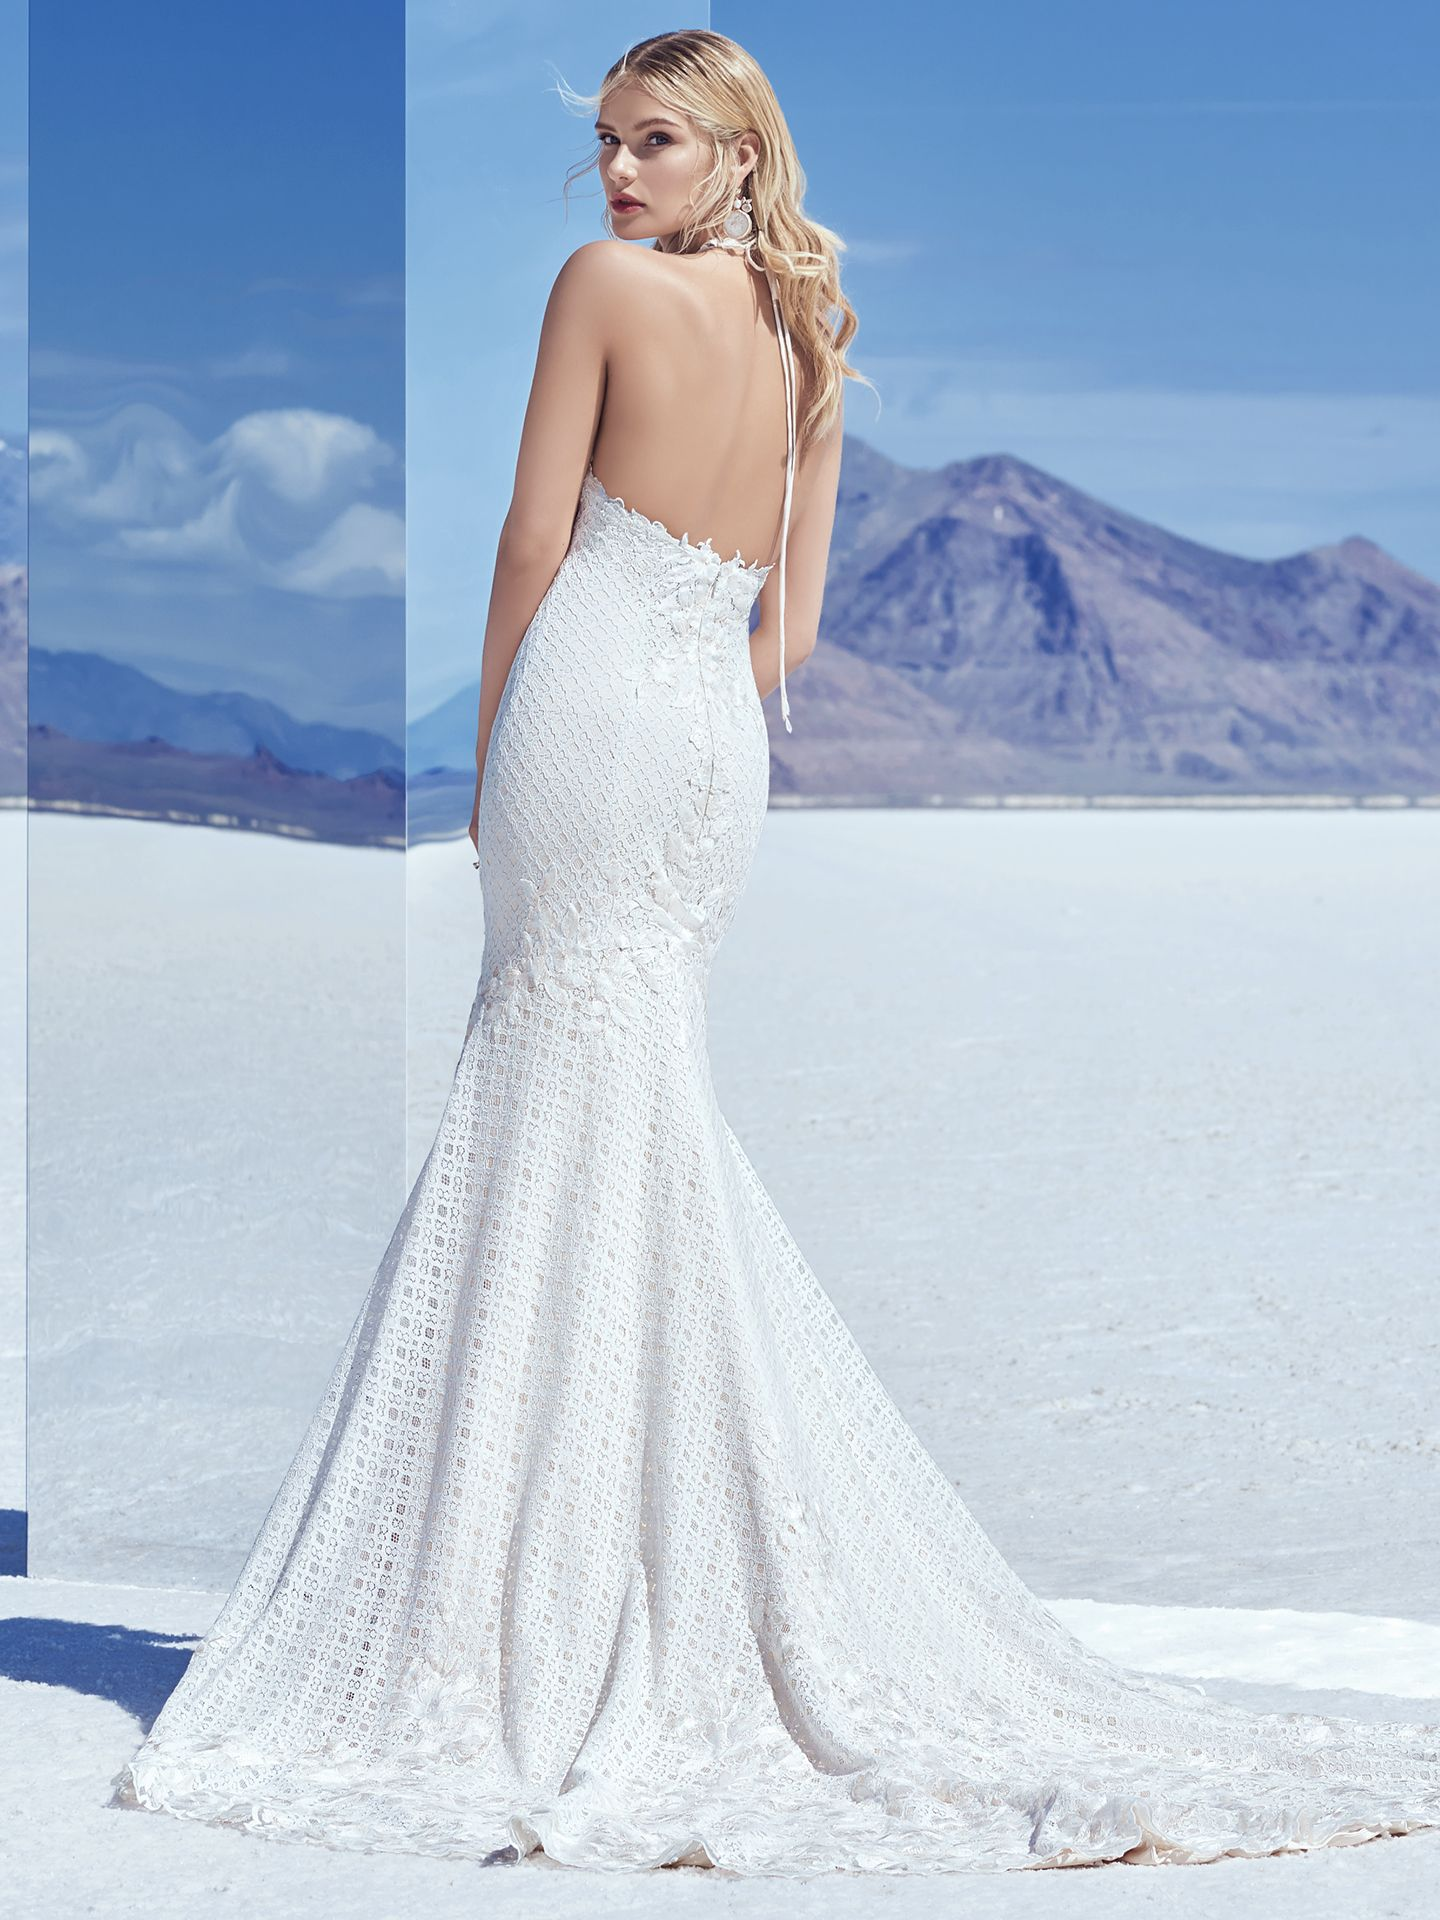 Chance features embroidered lace motifs cascade over allover lace in this unique wedding dress, accenting the bust, fit-and-flare skirt, and breathtaking train. Lace motifs create a halter neckline that ties over the open back. - The Latest Wedding Dress Trends for Engagement Season 2018